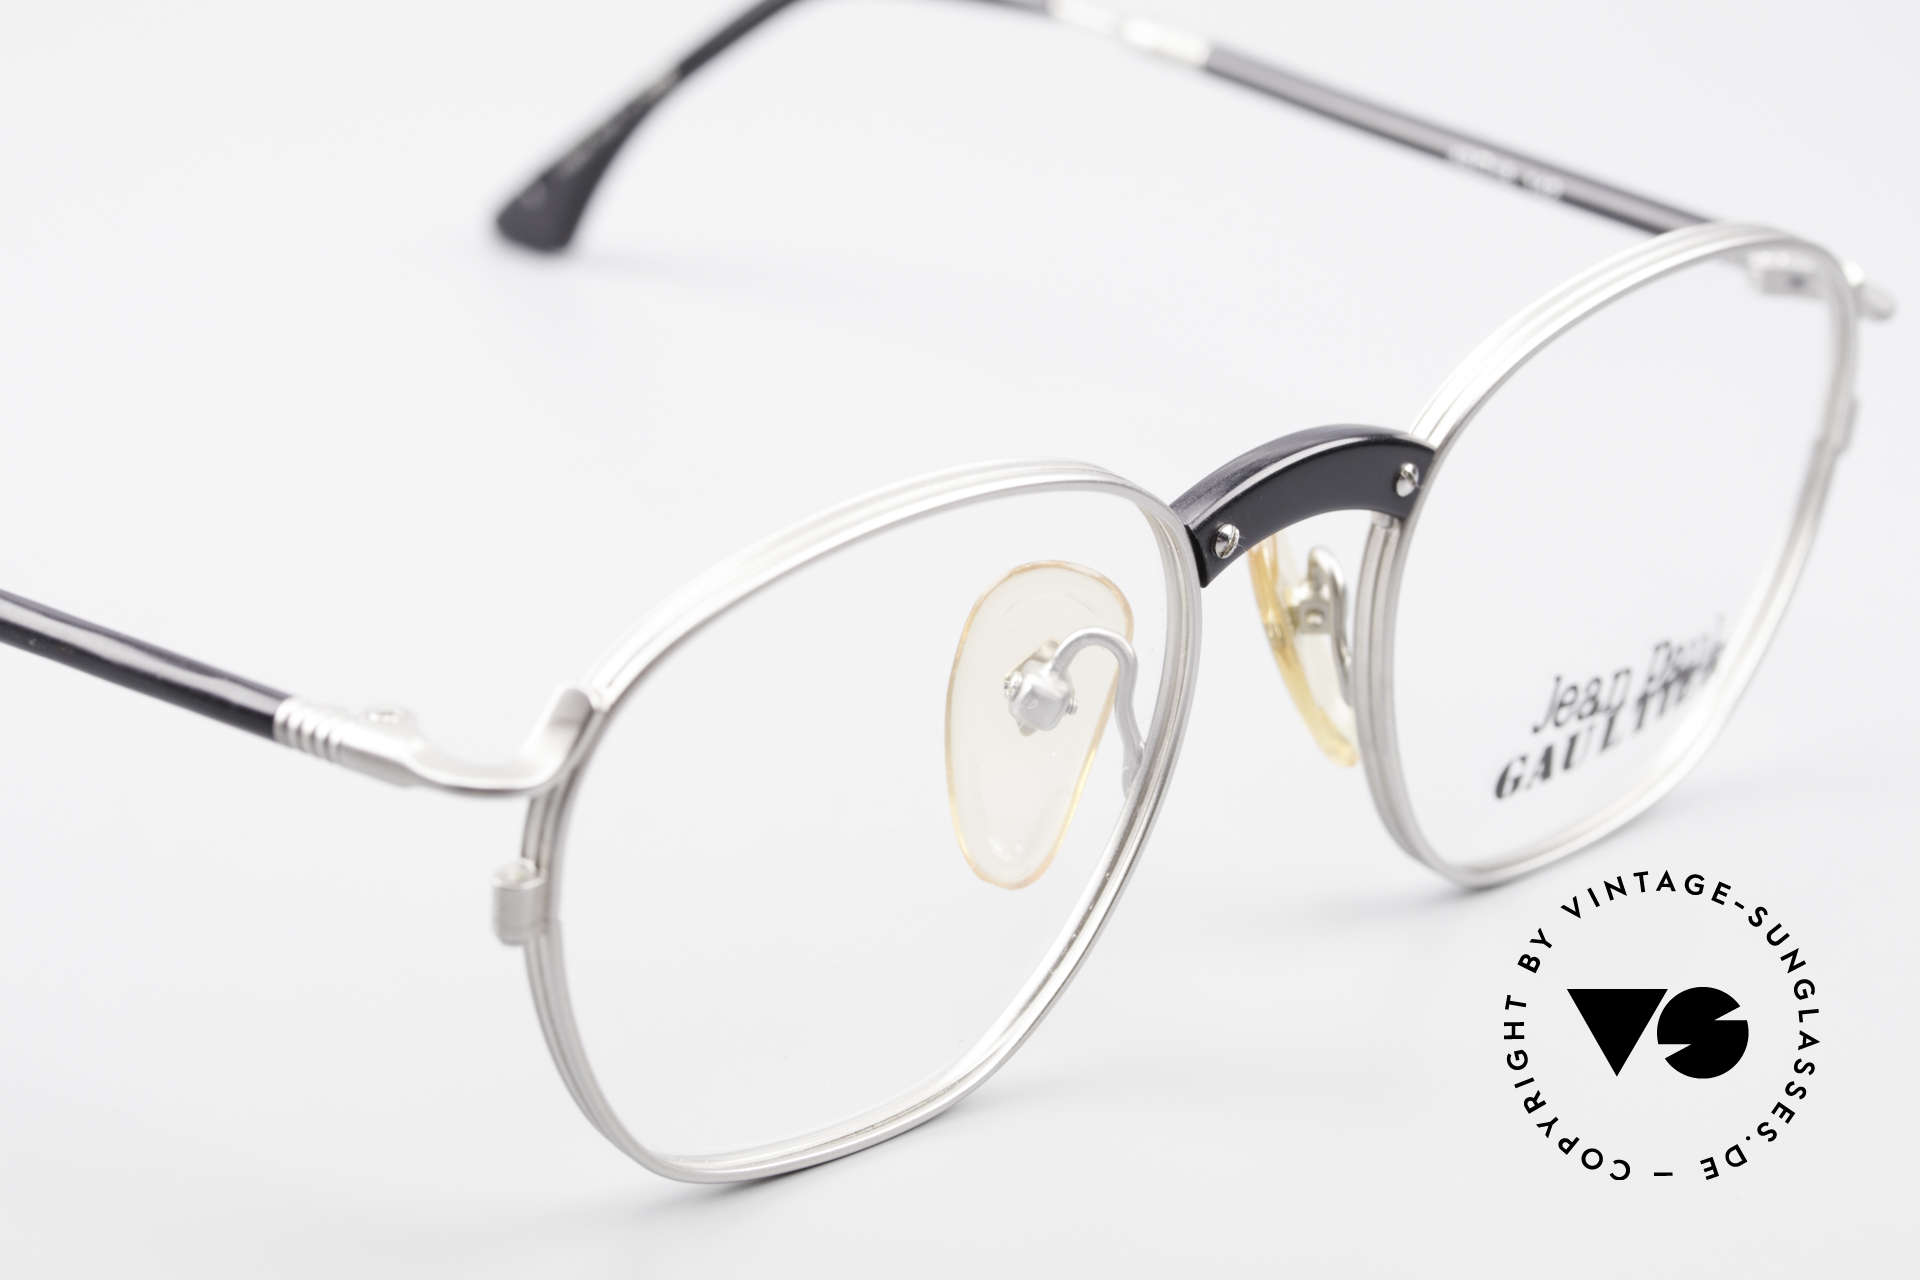 Jean Paul Gaultier 55-1271 Rare JPG Vintage Eyeglasses, NO RETRO FRAME, but a rare 25 years old ORIGINAL, Made for Men and Women